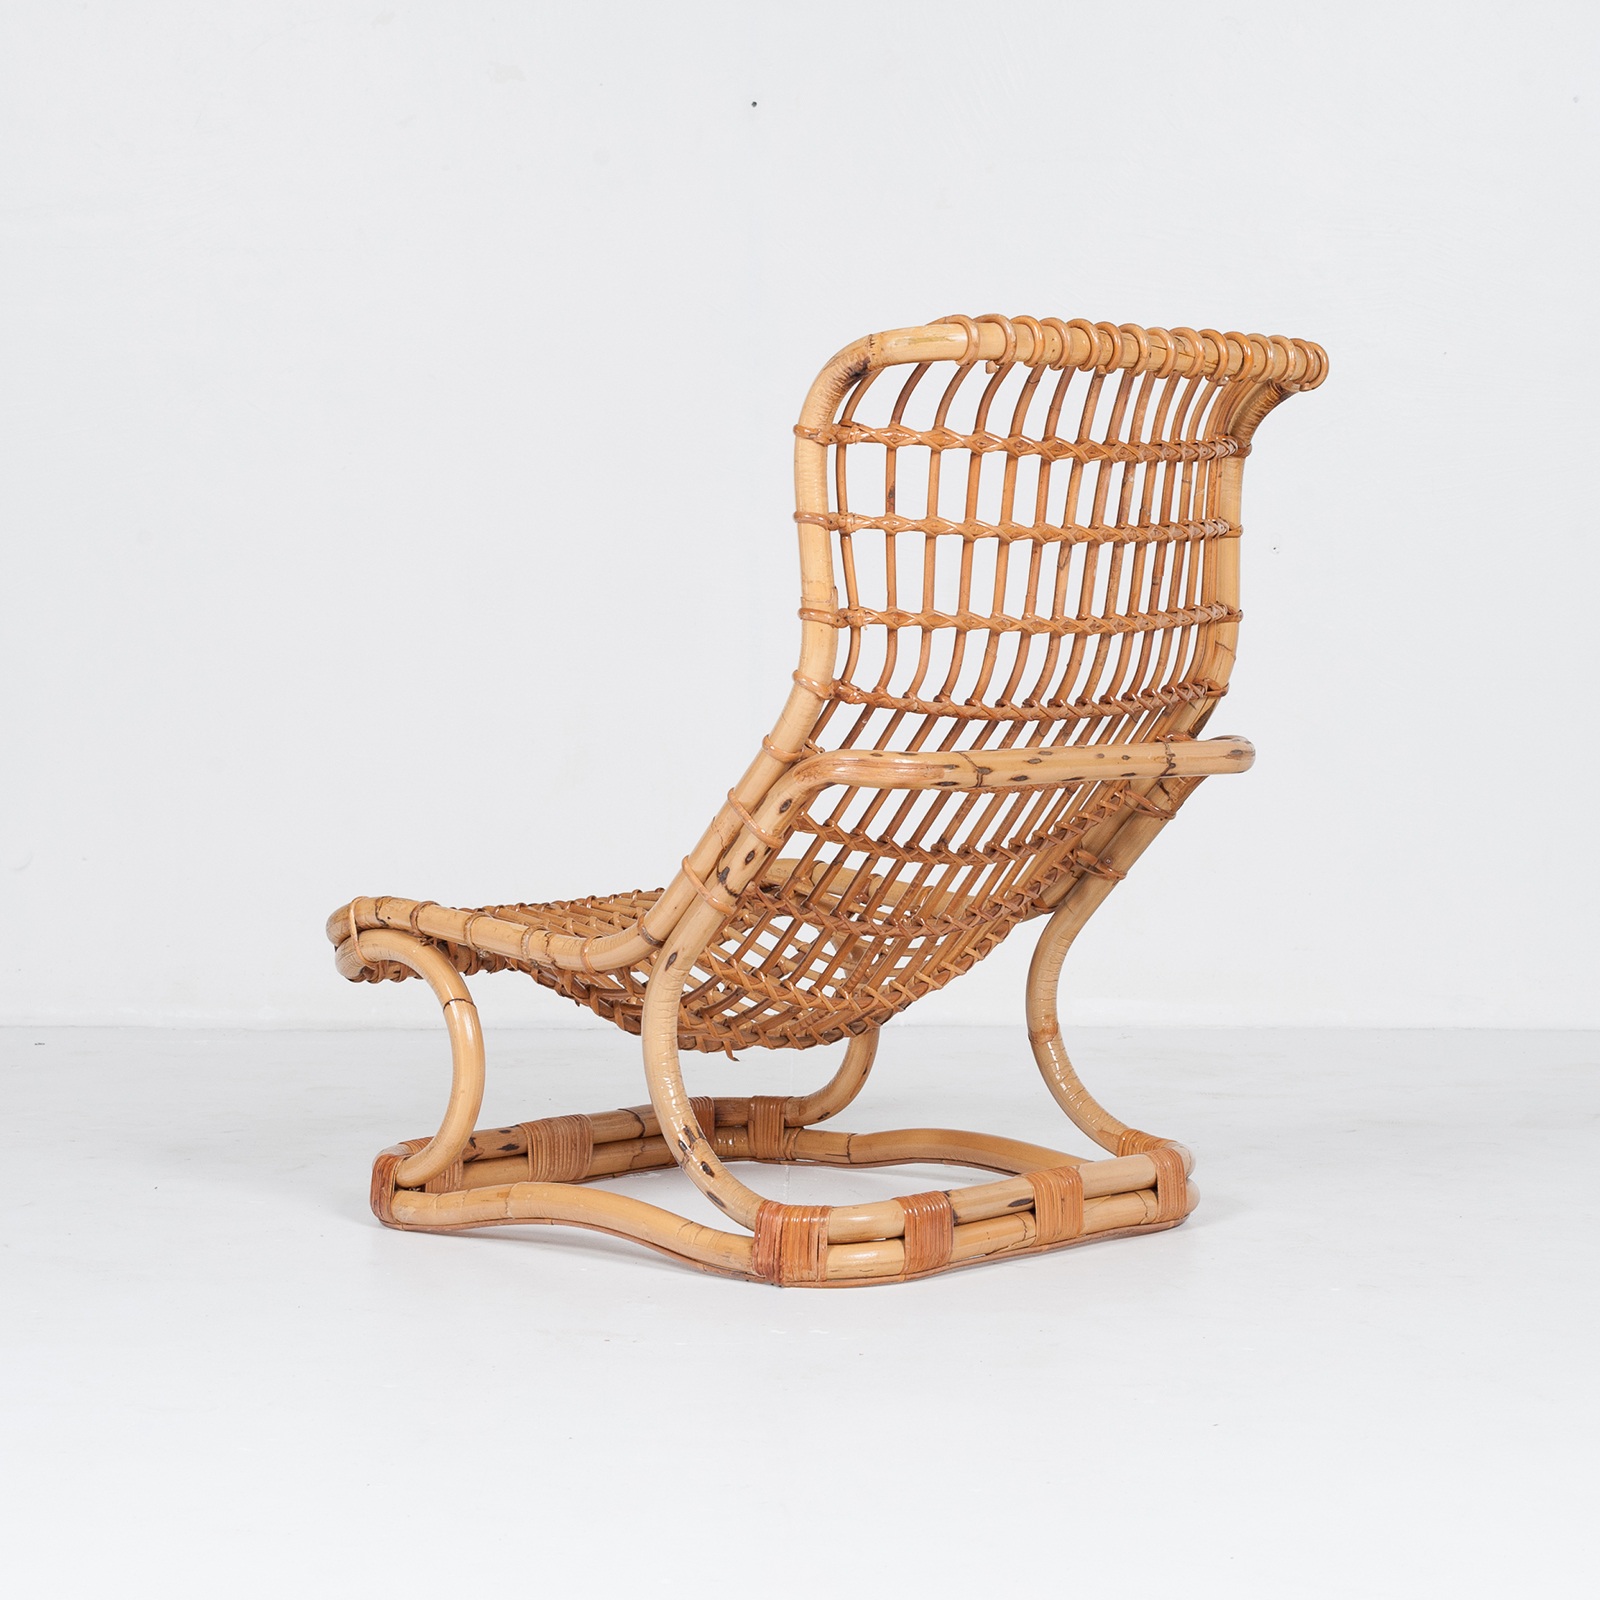 Lounge Chair By Tito Agnoli In Cane, 1960s, Italy57